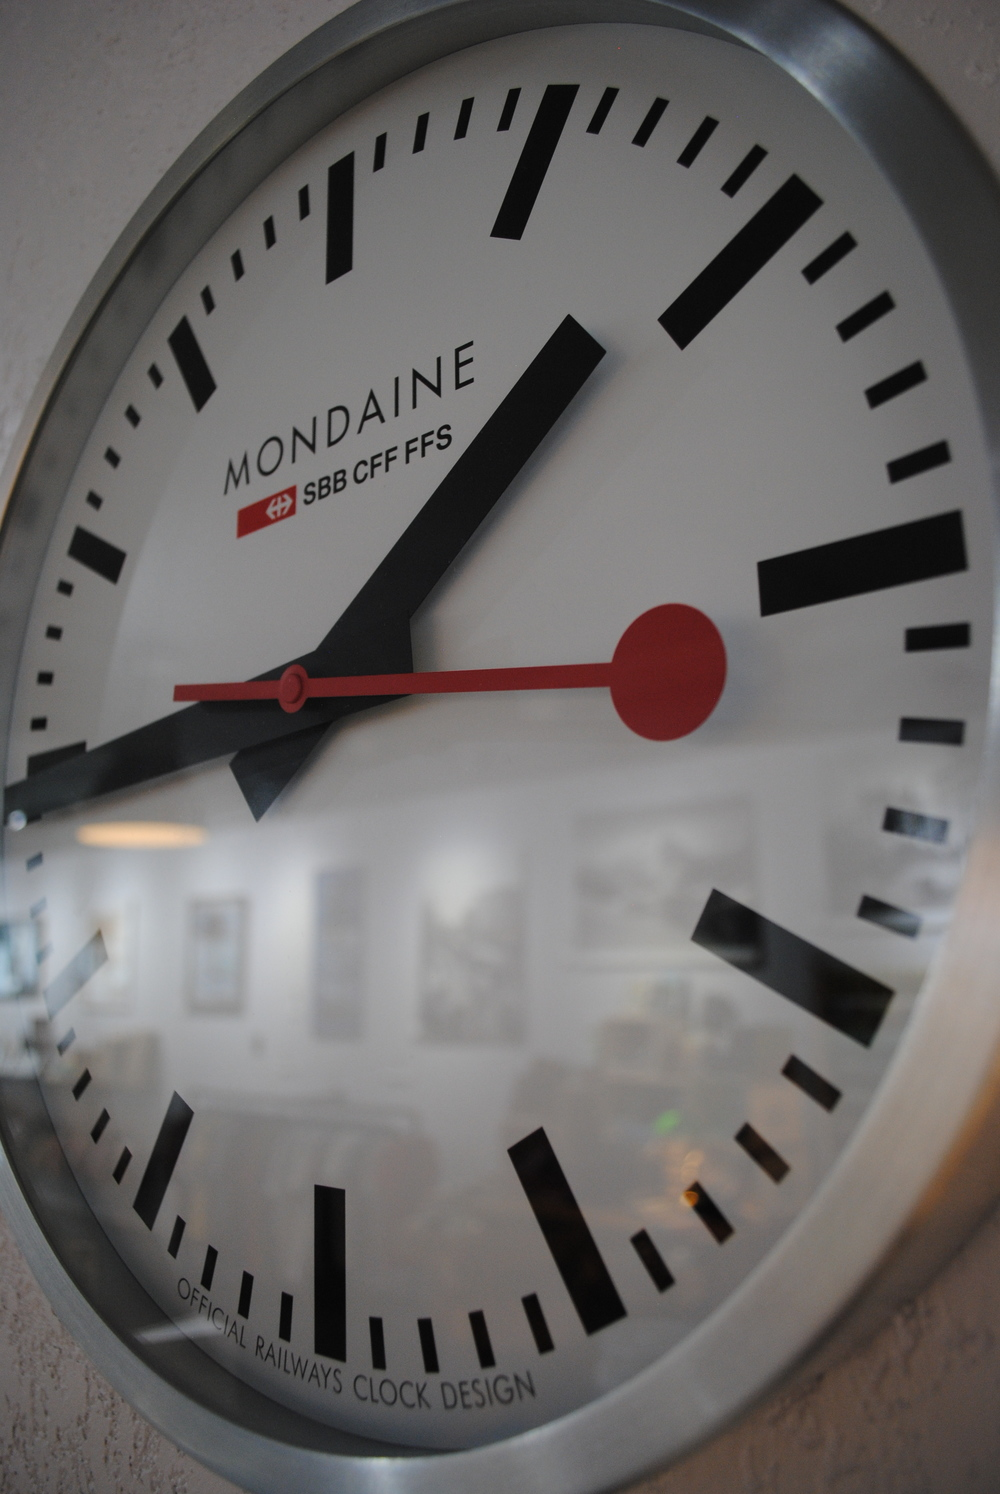 Mondaine Clock at The Prints and the Paper